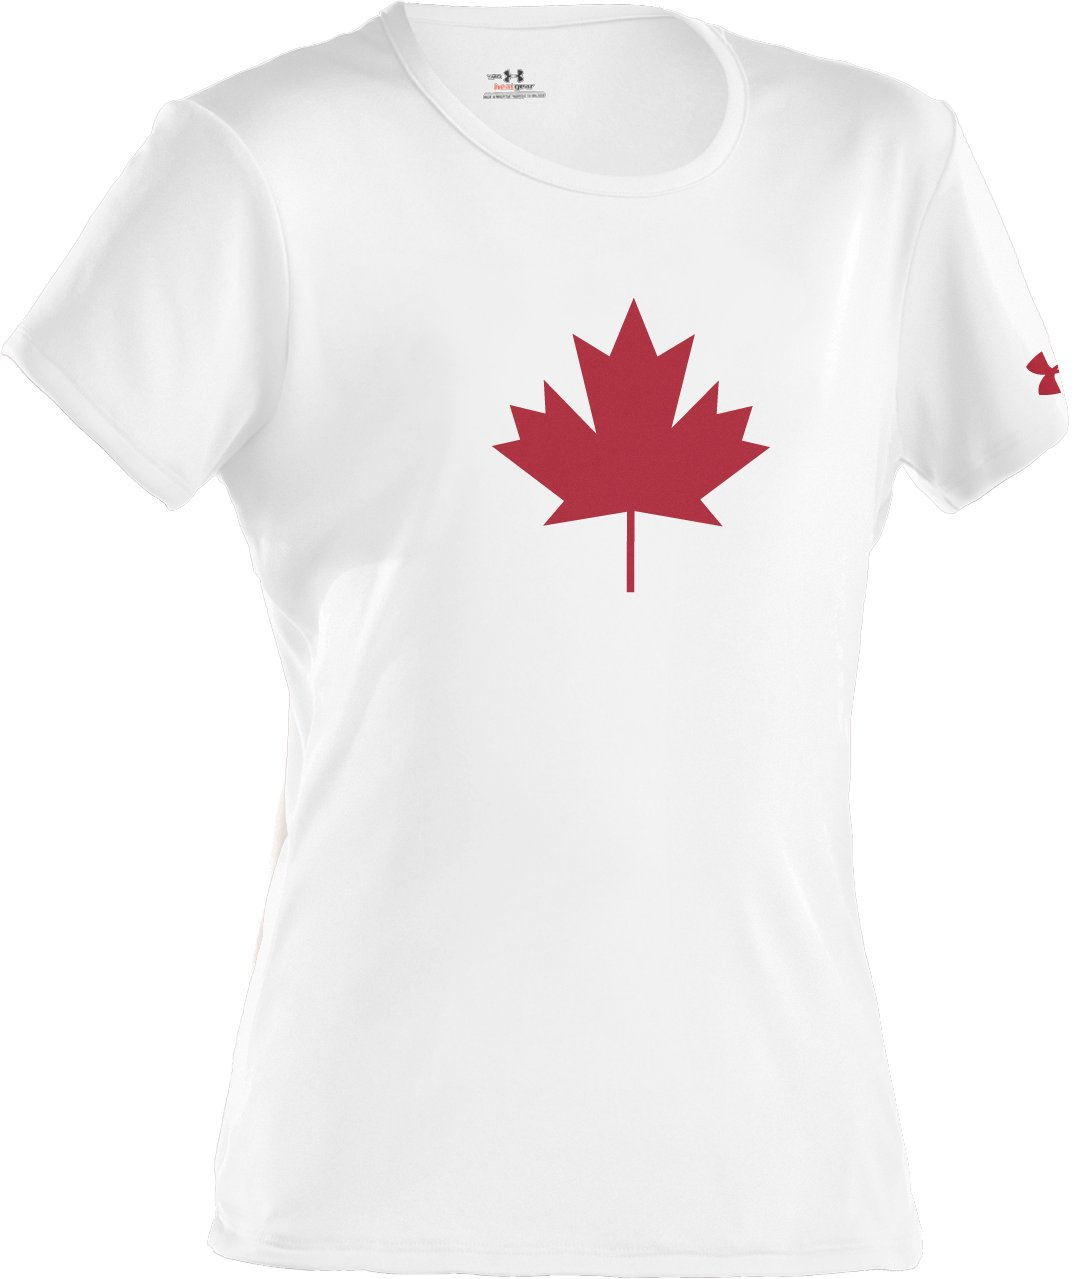 Girls' Canada Leaf T-Shirt, White, zoomed image